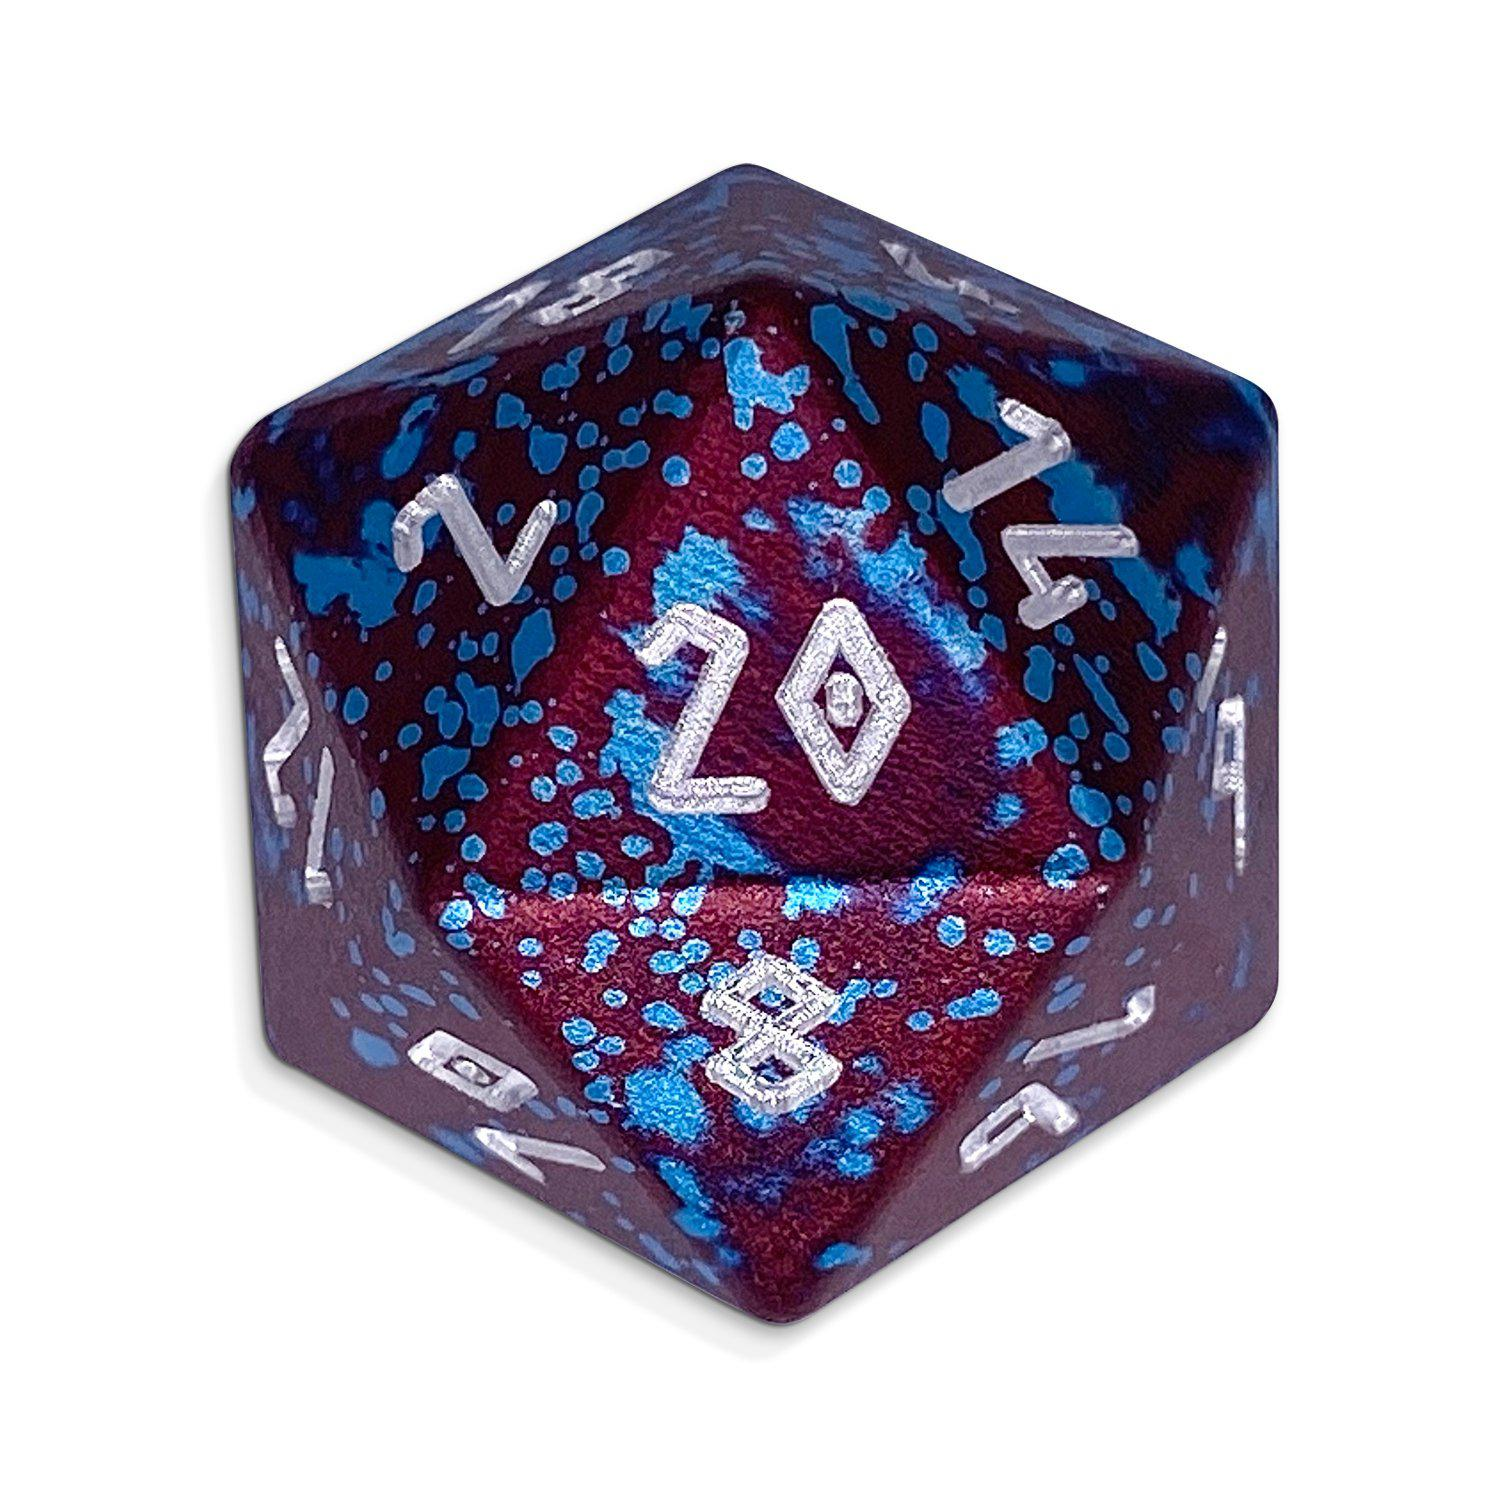 Single Wondrous Dice® D20 in Faerie Dragon by Norse Foundry 6063 Aircraft Grade Aluminum